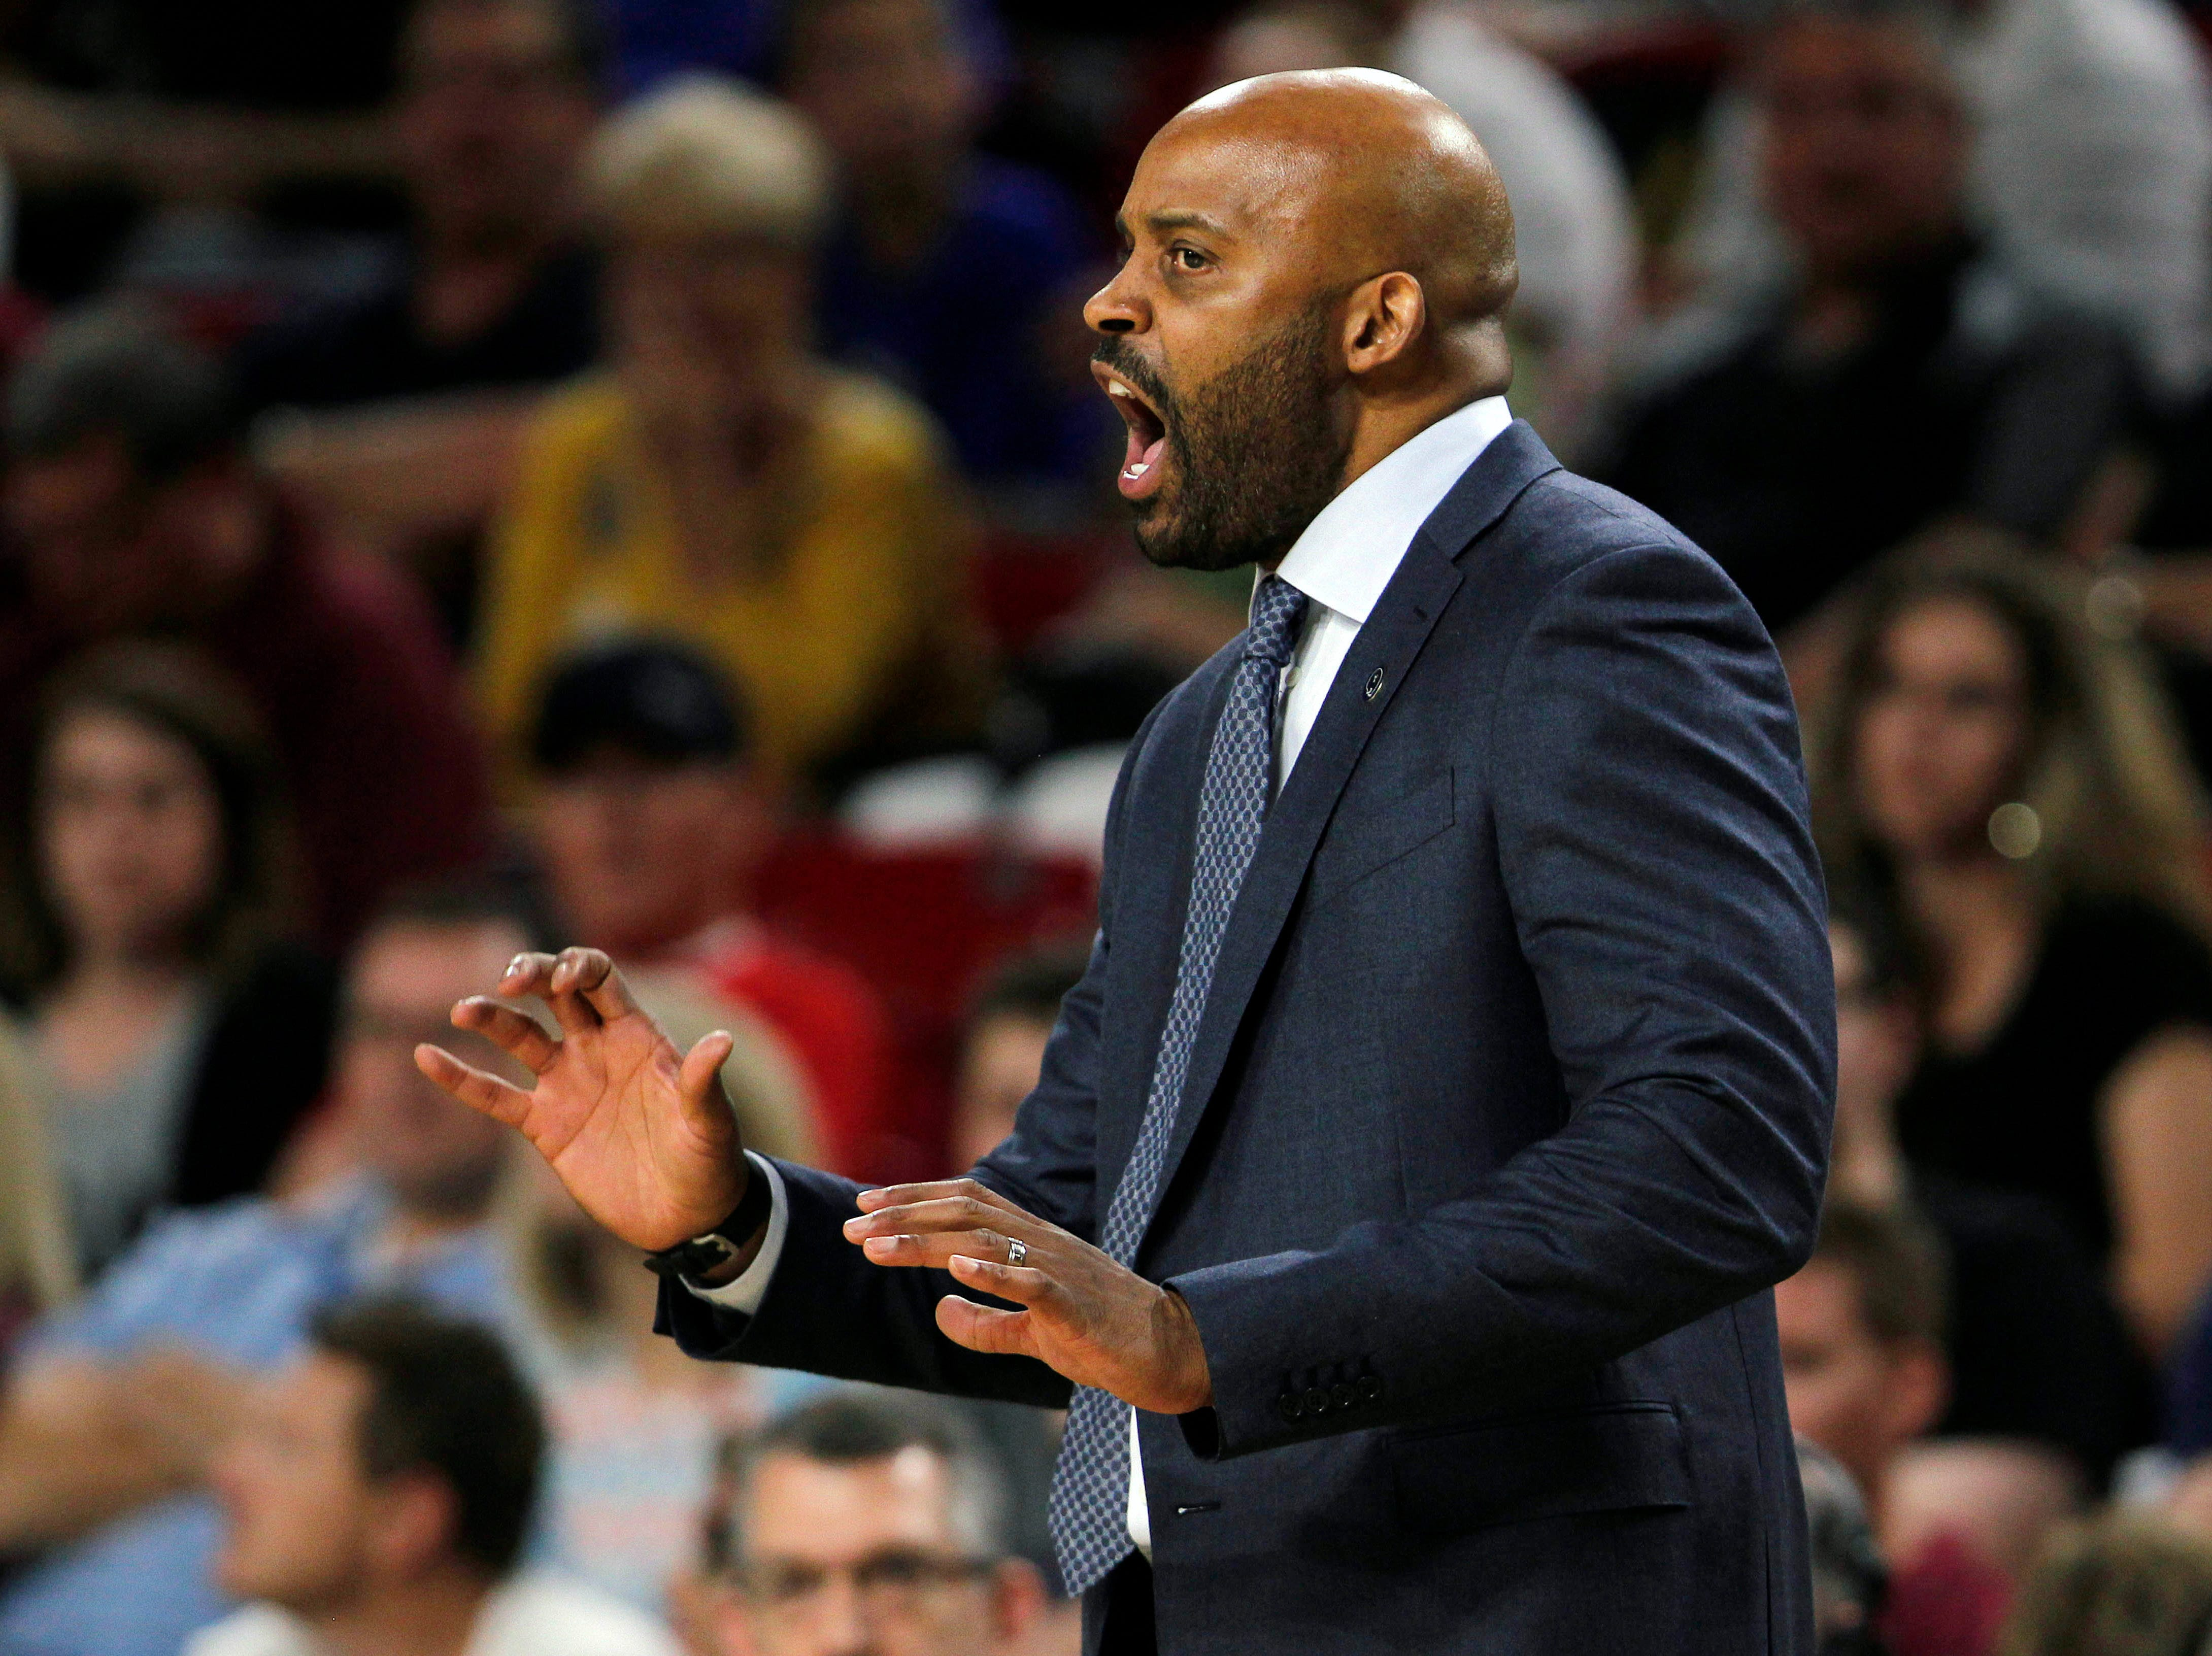 California coach Cuonzo Martin yells instructions to his players from the sidelines during the second half of the team's NCAA college basketball game against Arizona State in Tempe, Ariz., Saturday, March 5, 2016.